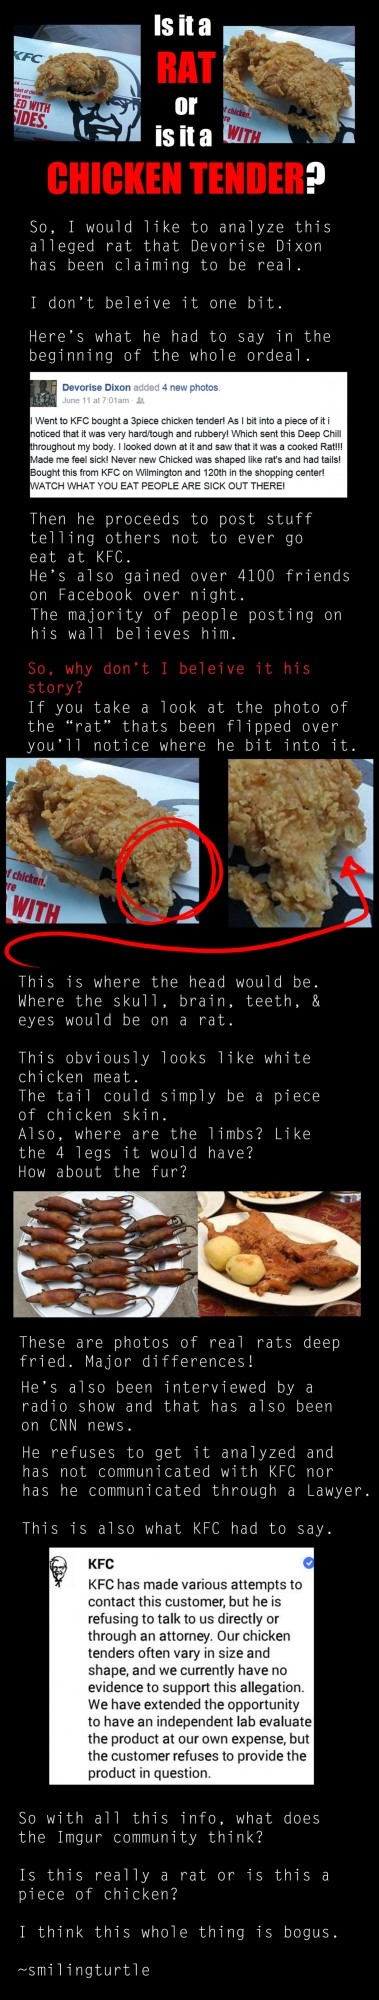 User smilingturtle posted this image which debunks the KFC fried rat story